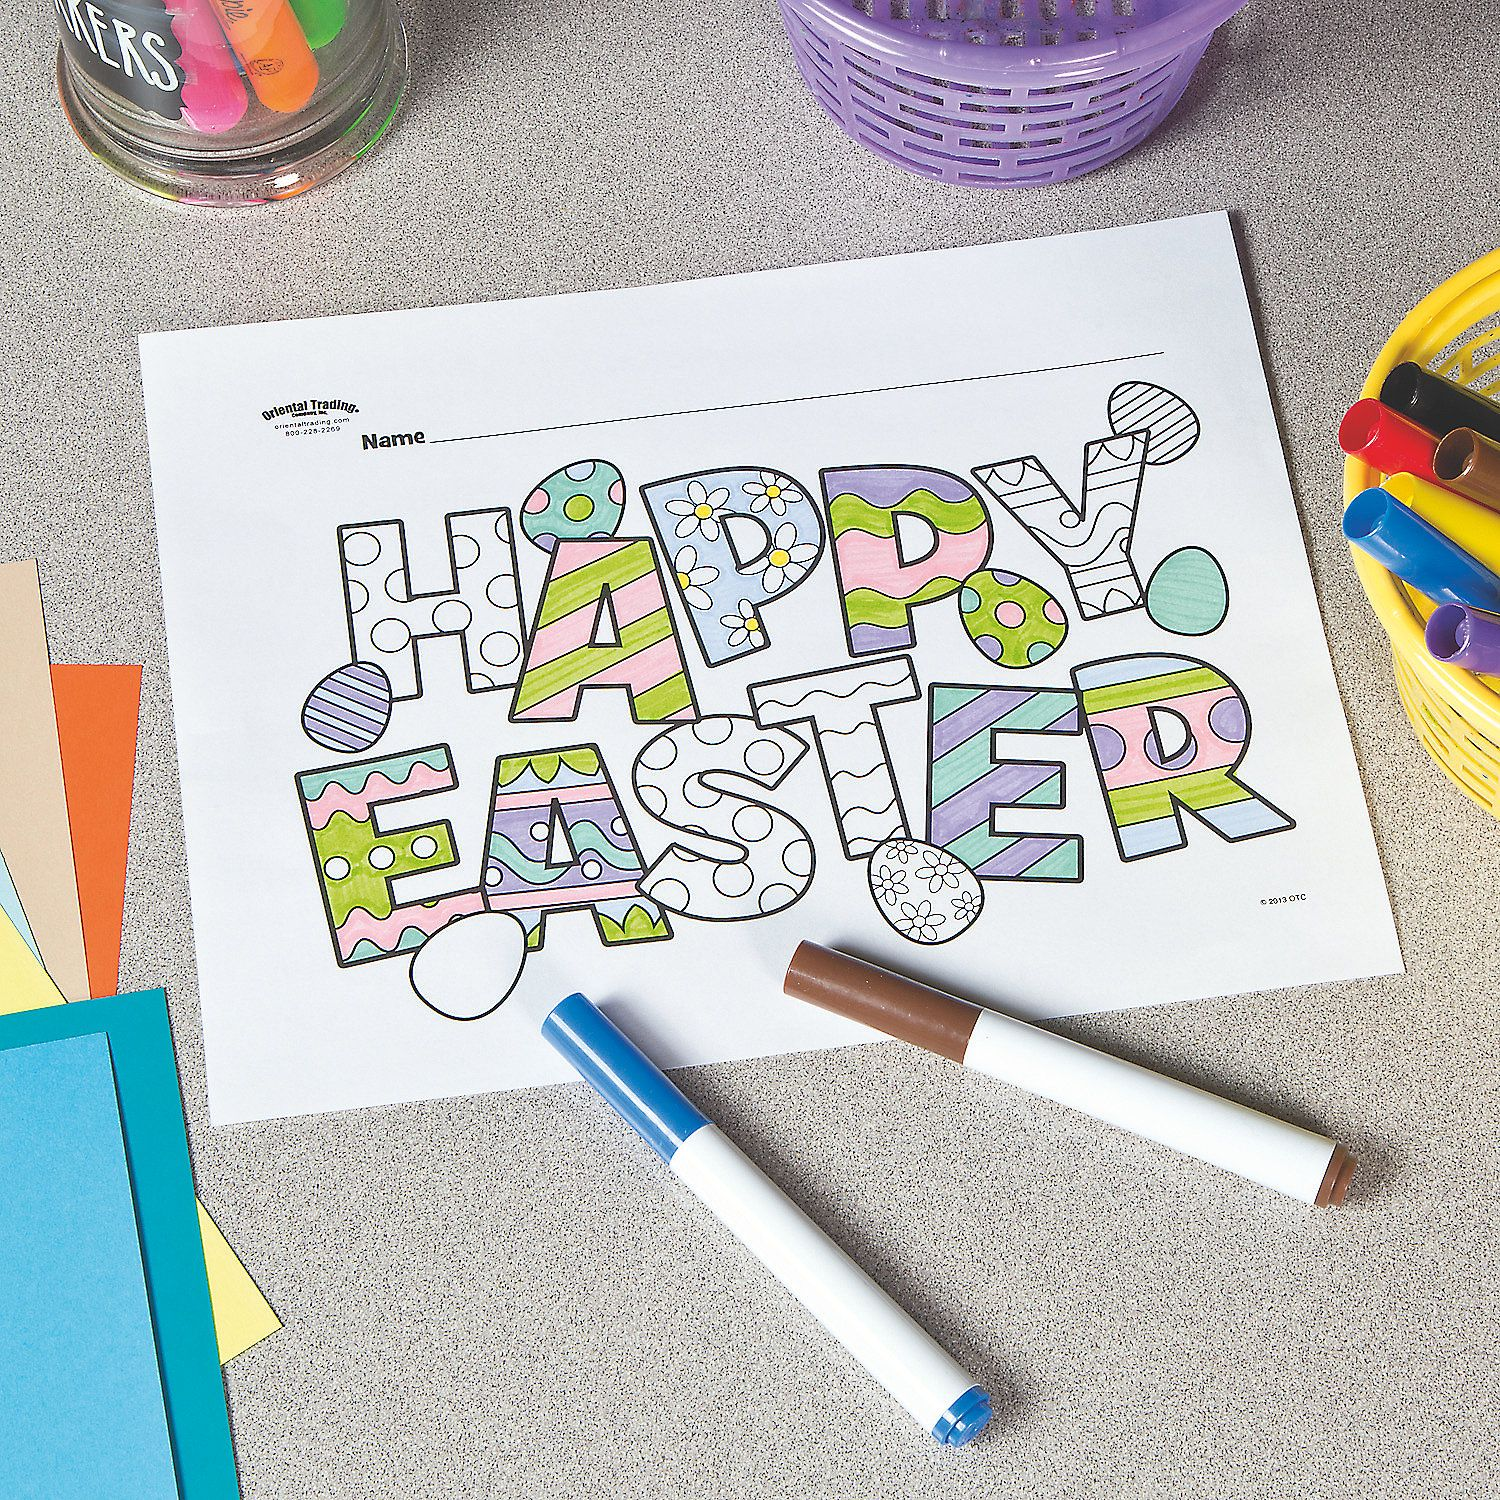 Happy Easter Free Printable Coloring Page Orientaltrading Com Easter Printables Free Easter Coloring Pages Easter Activities For Kids